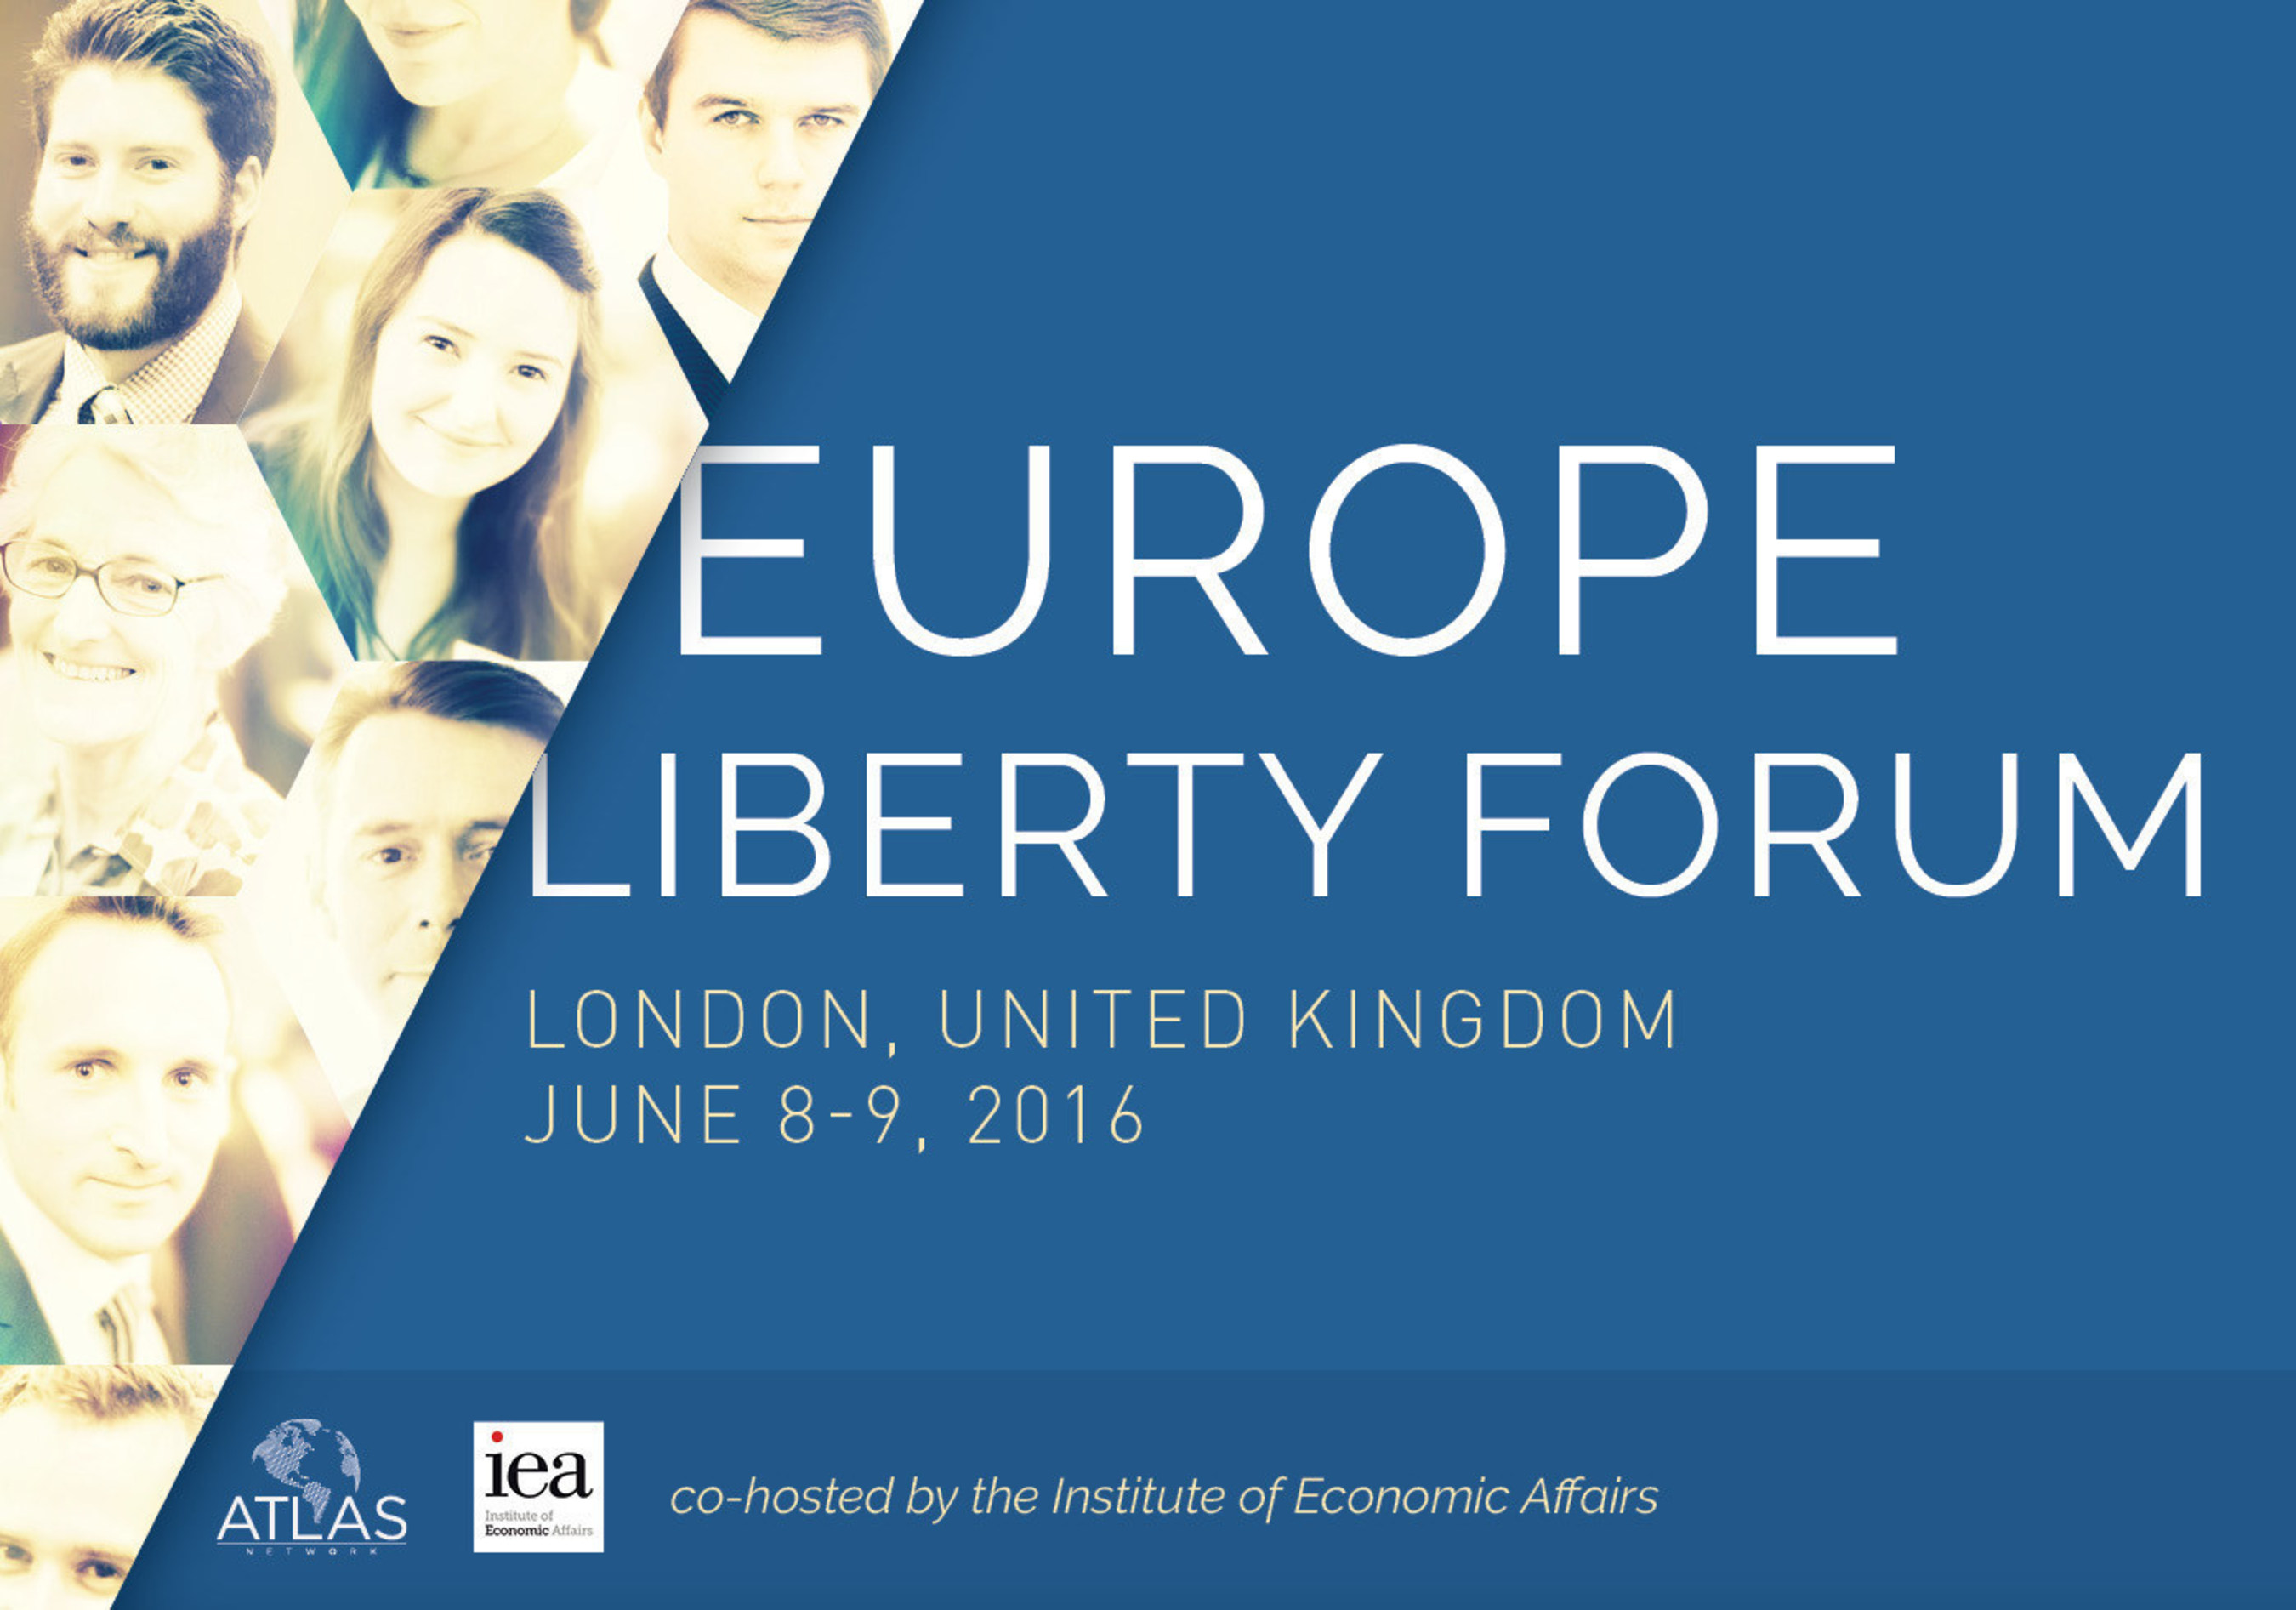 Europe Liberty Forum, #EuropeLF16, June 8-9, 2016, co-hosted by Atlas Network and the London-based Institute of Economic Affairs, is a gathering of the best and the brightest in Europe to discuss and exchange solutions that promote liberty and free-market reforms in the region.